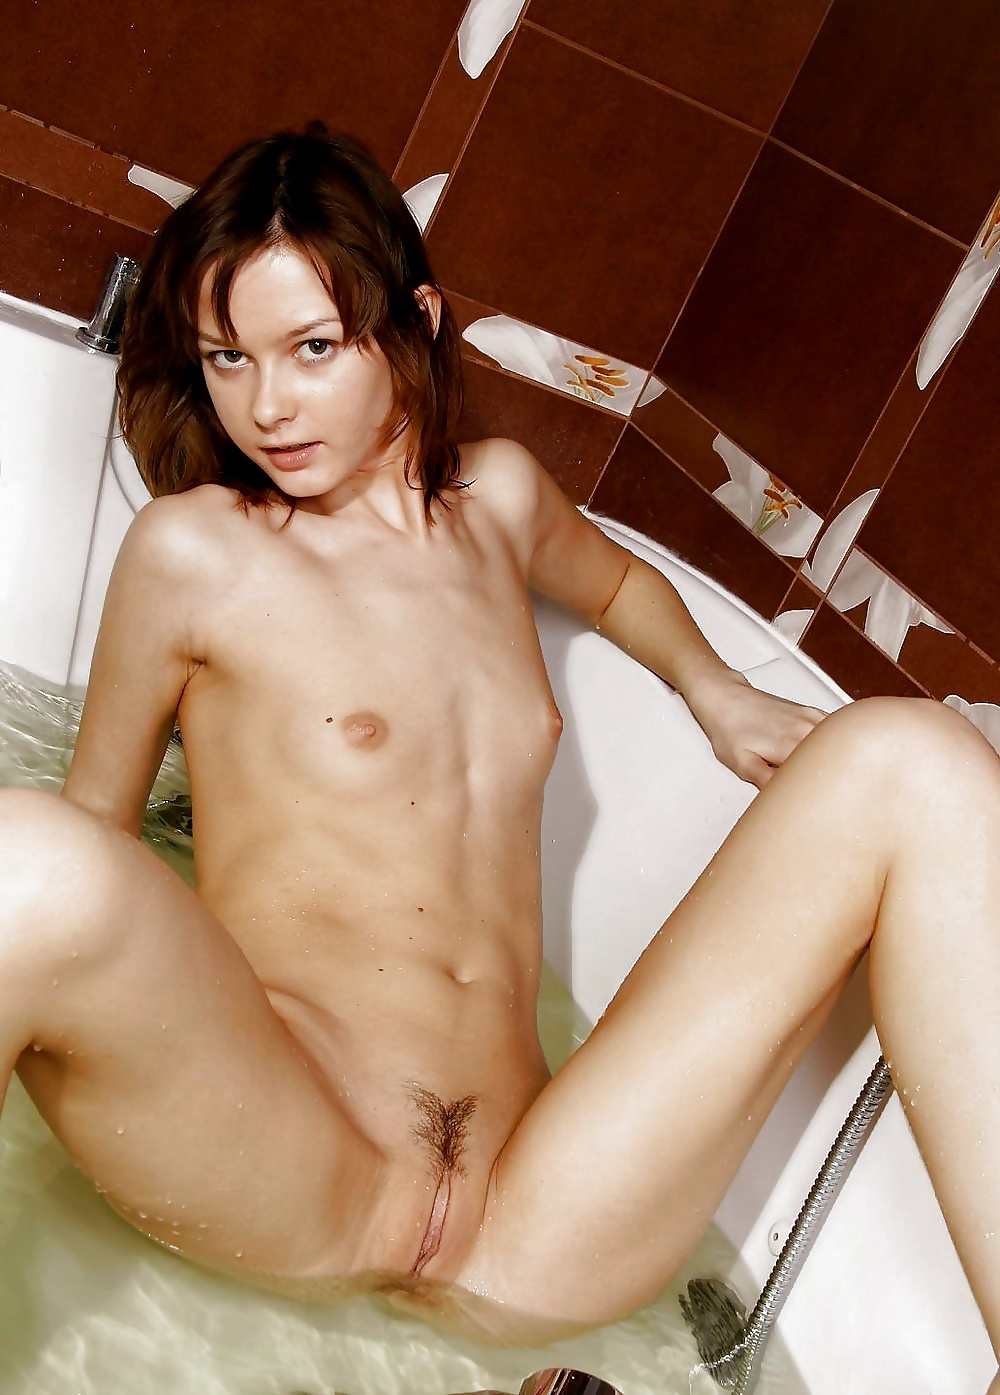 Nude photos of red head women